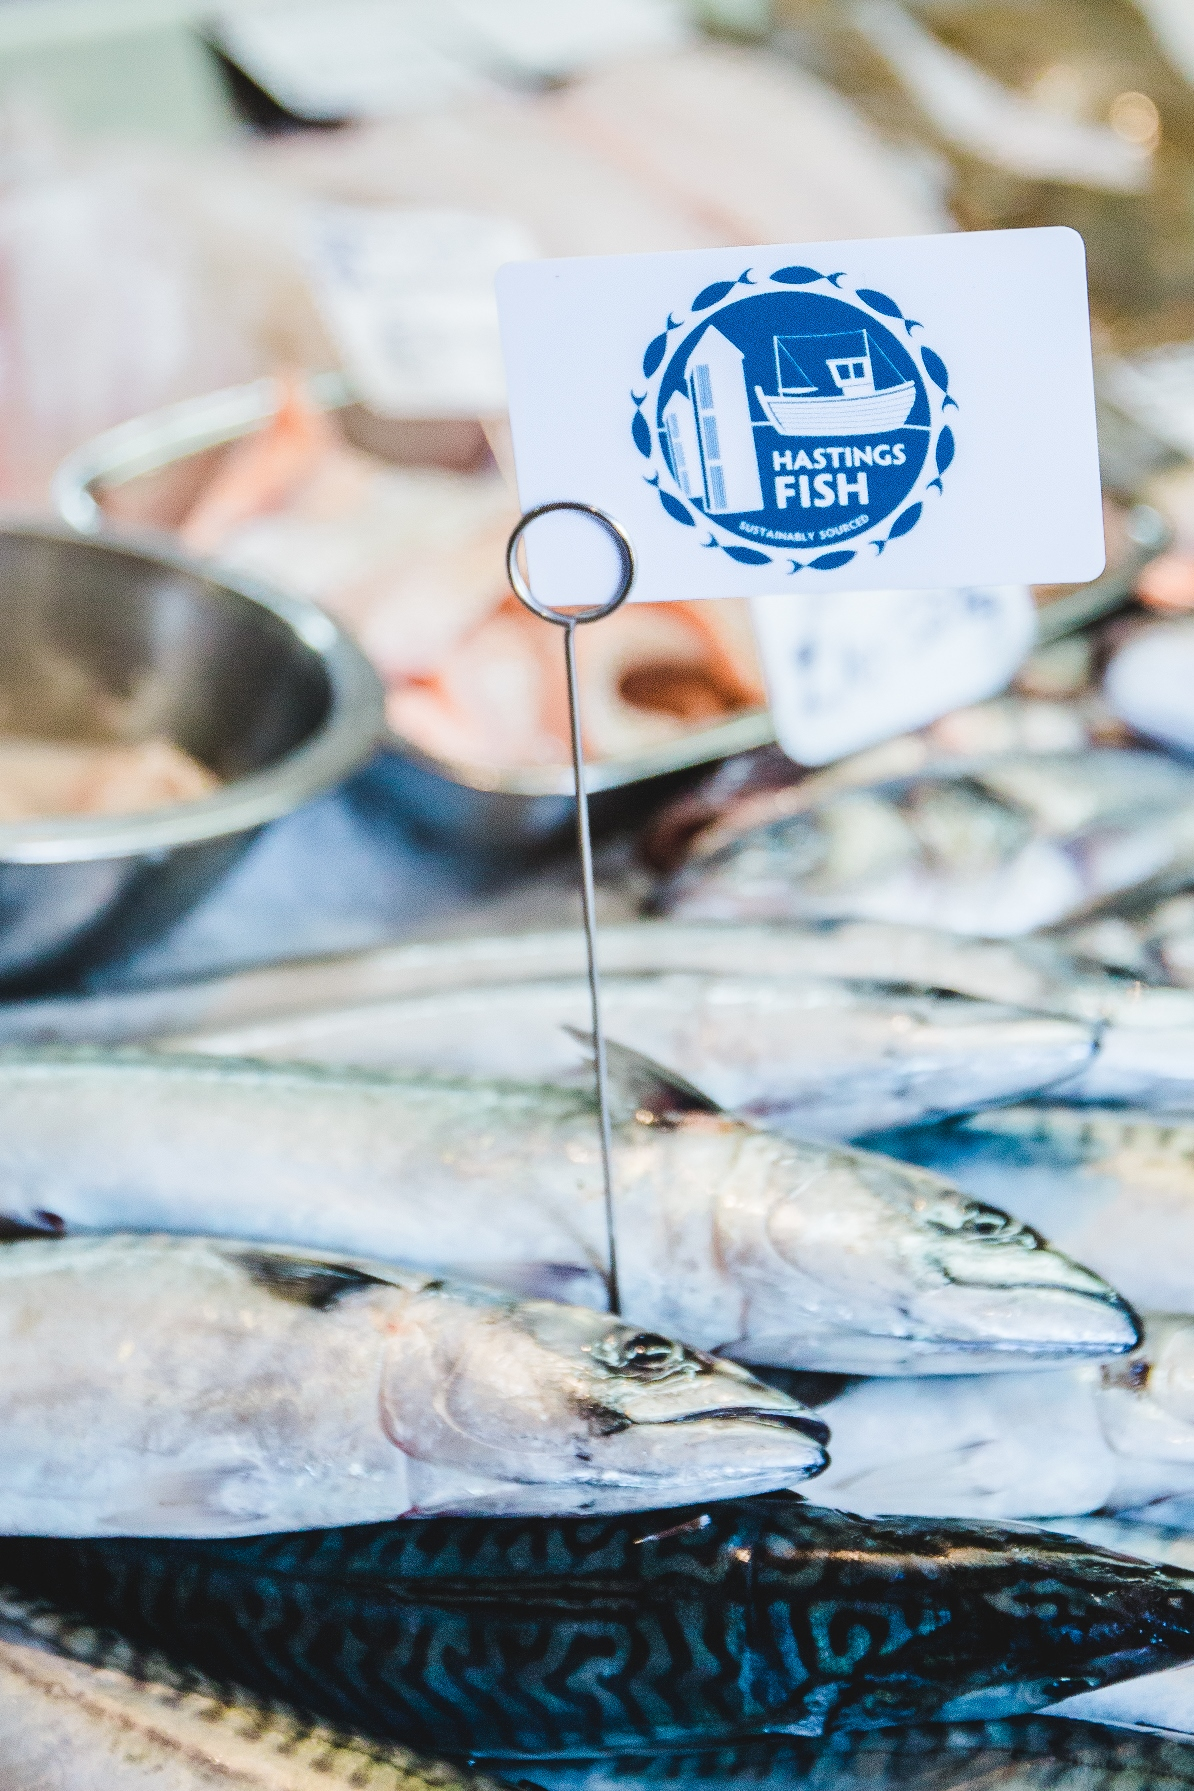 New 'Hastings Fish' brand launches this weekend at Seafood and Wine festival